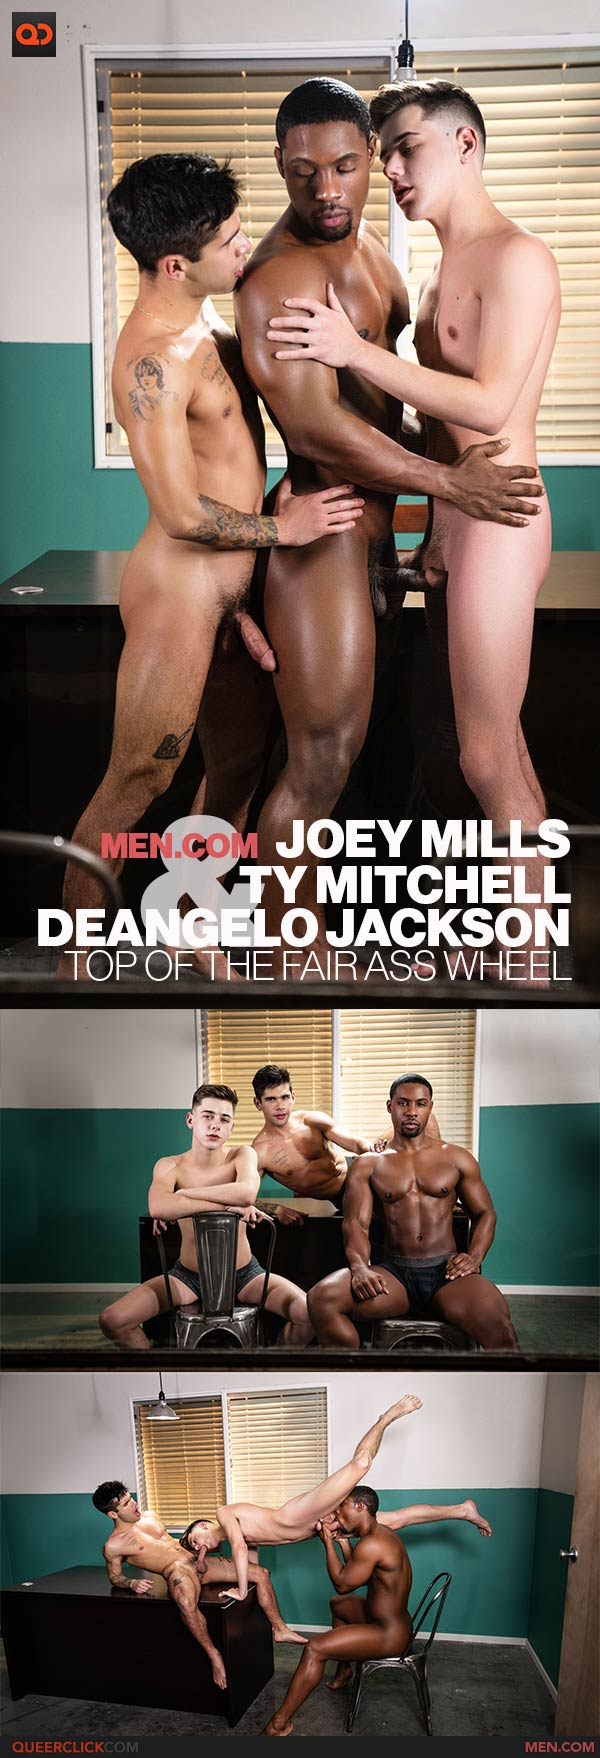 Men.com: DeAngelo Jackson, Ty Mitchell and Joey Mills- Top Of The Fair Ass Wheel